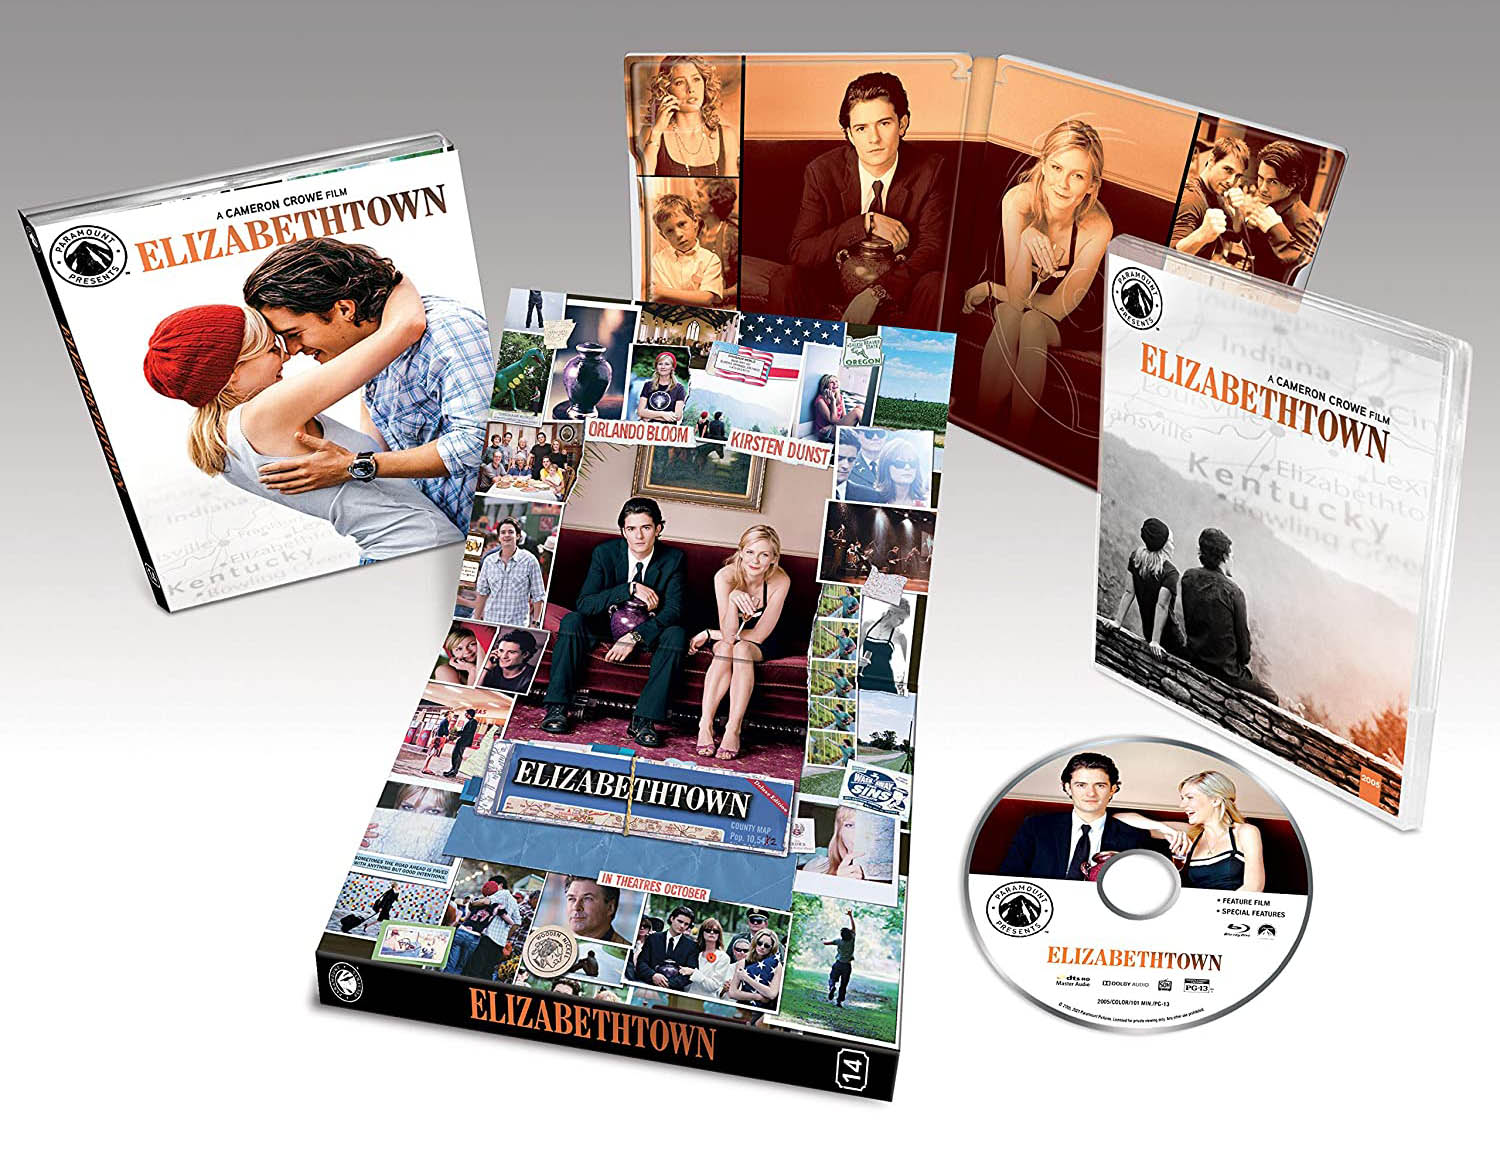 Elizabethtown Blu-ray Paramount Presents 14 open